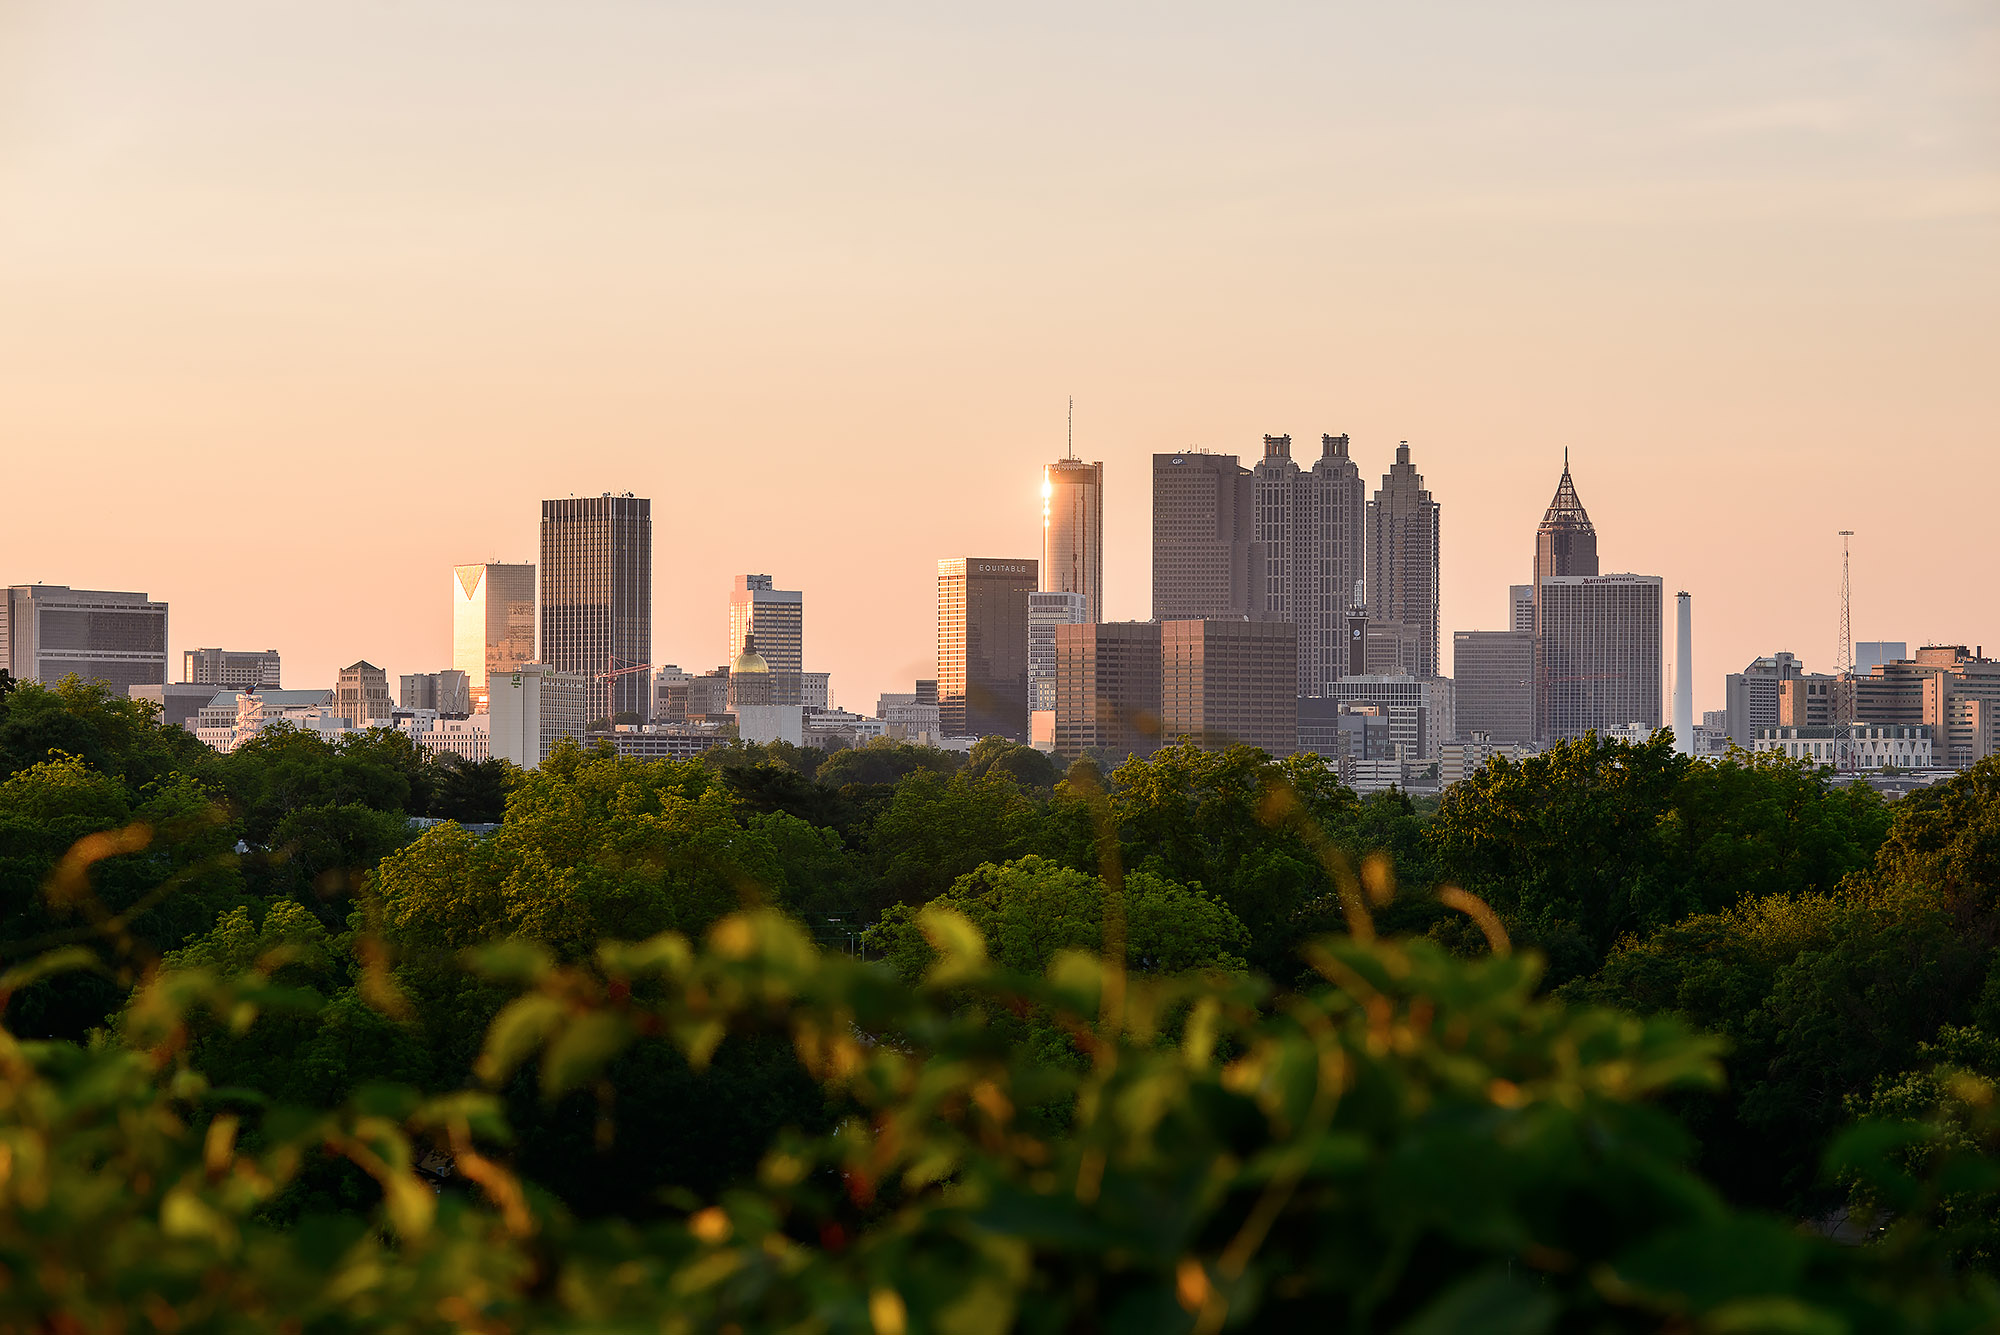 20130526_ATL_SKYLINE_copyright_Tim_Harman_0001.jpg